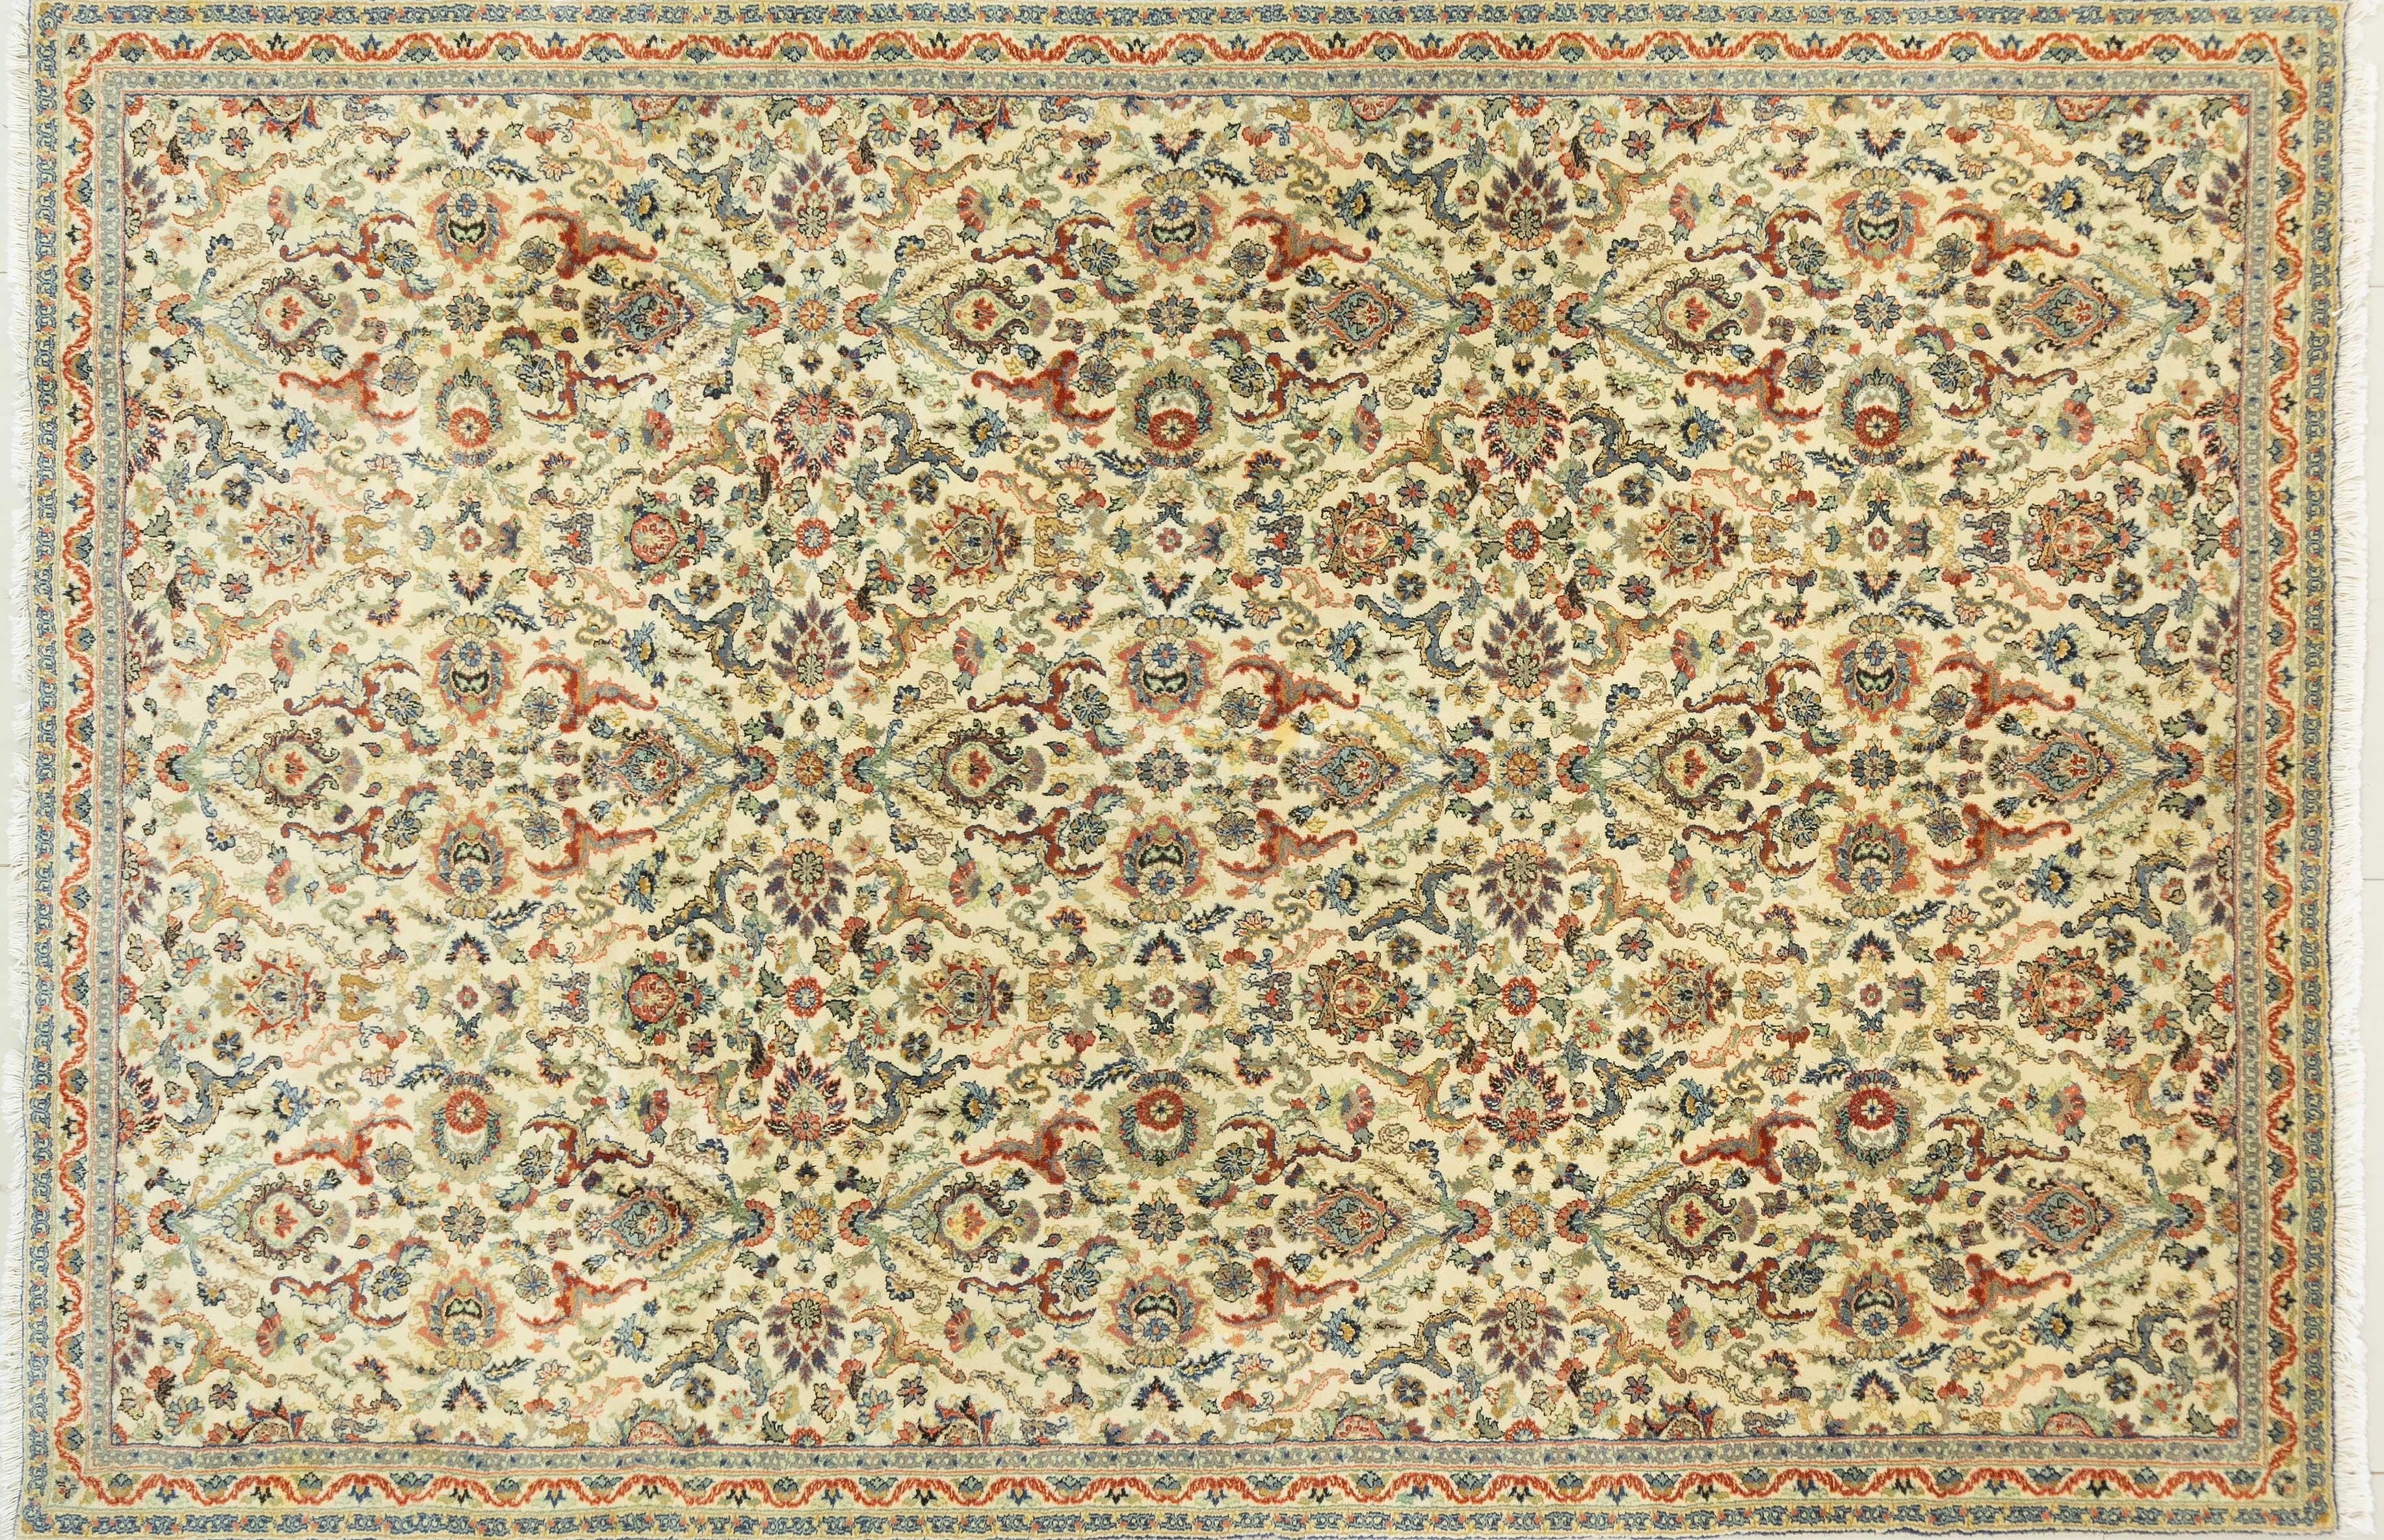 A Hand Knotted Kaisary Carpet, 310 X 206